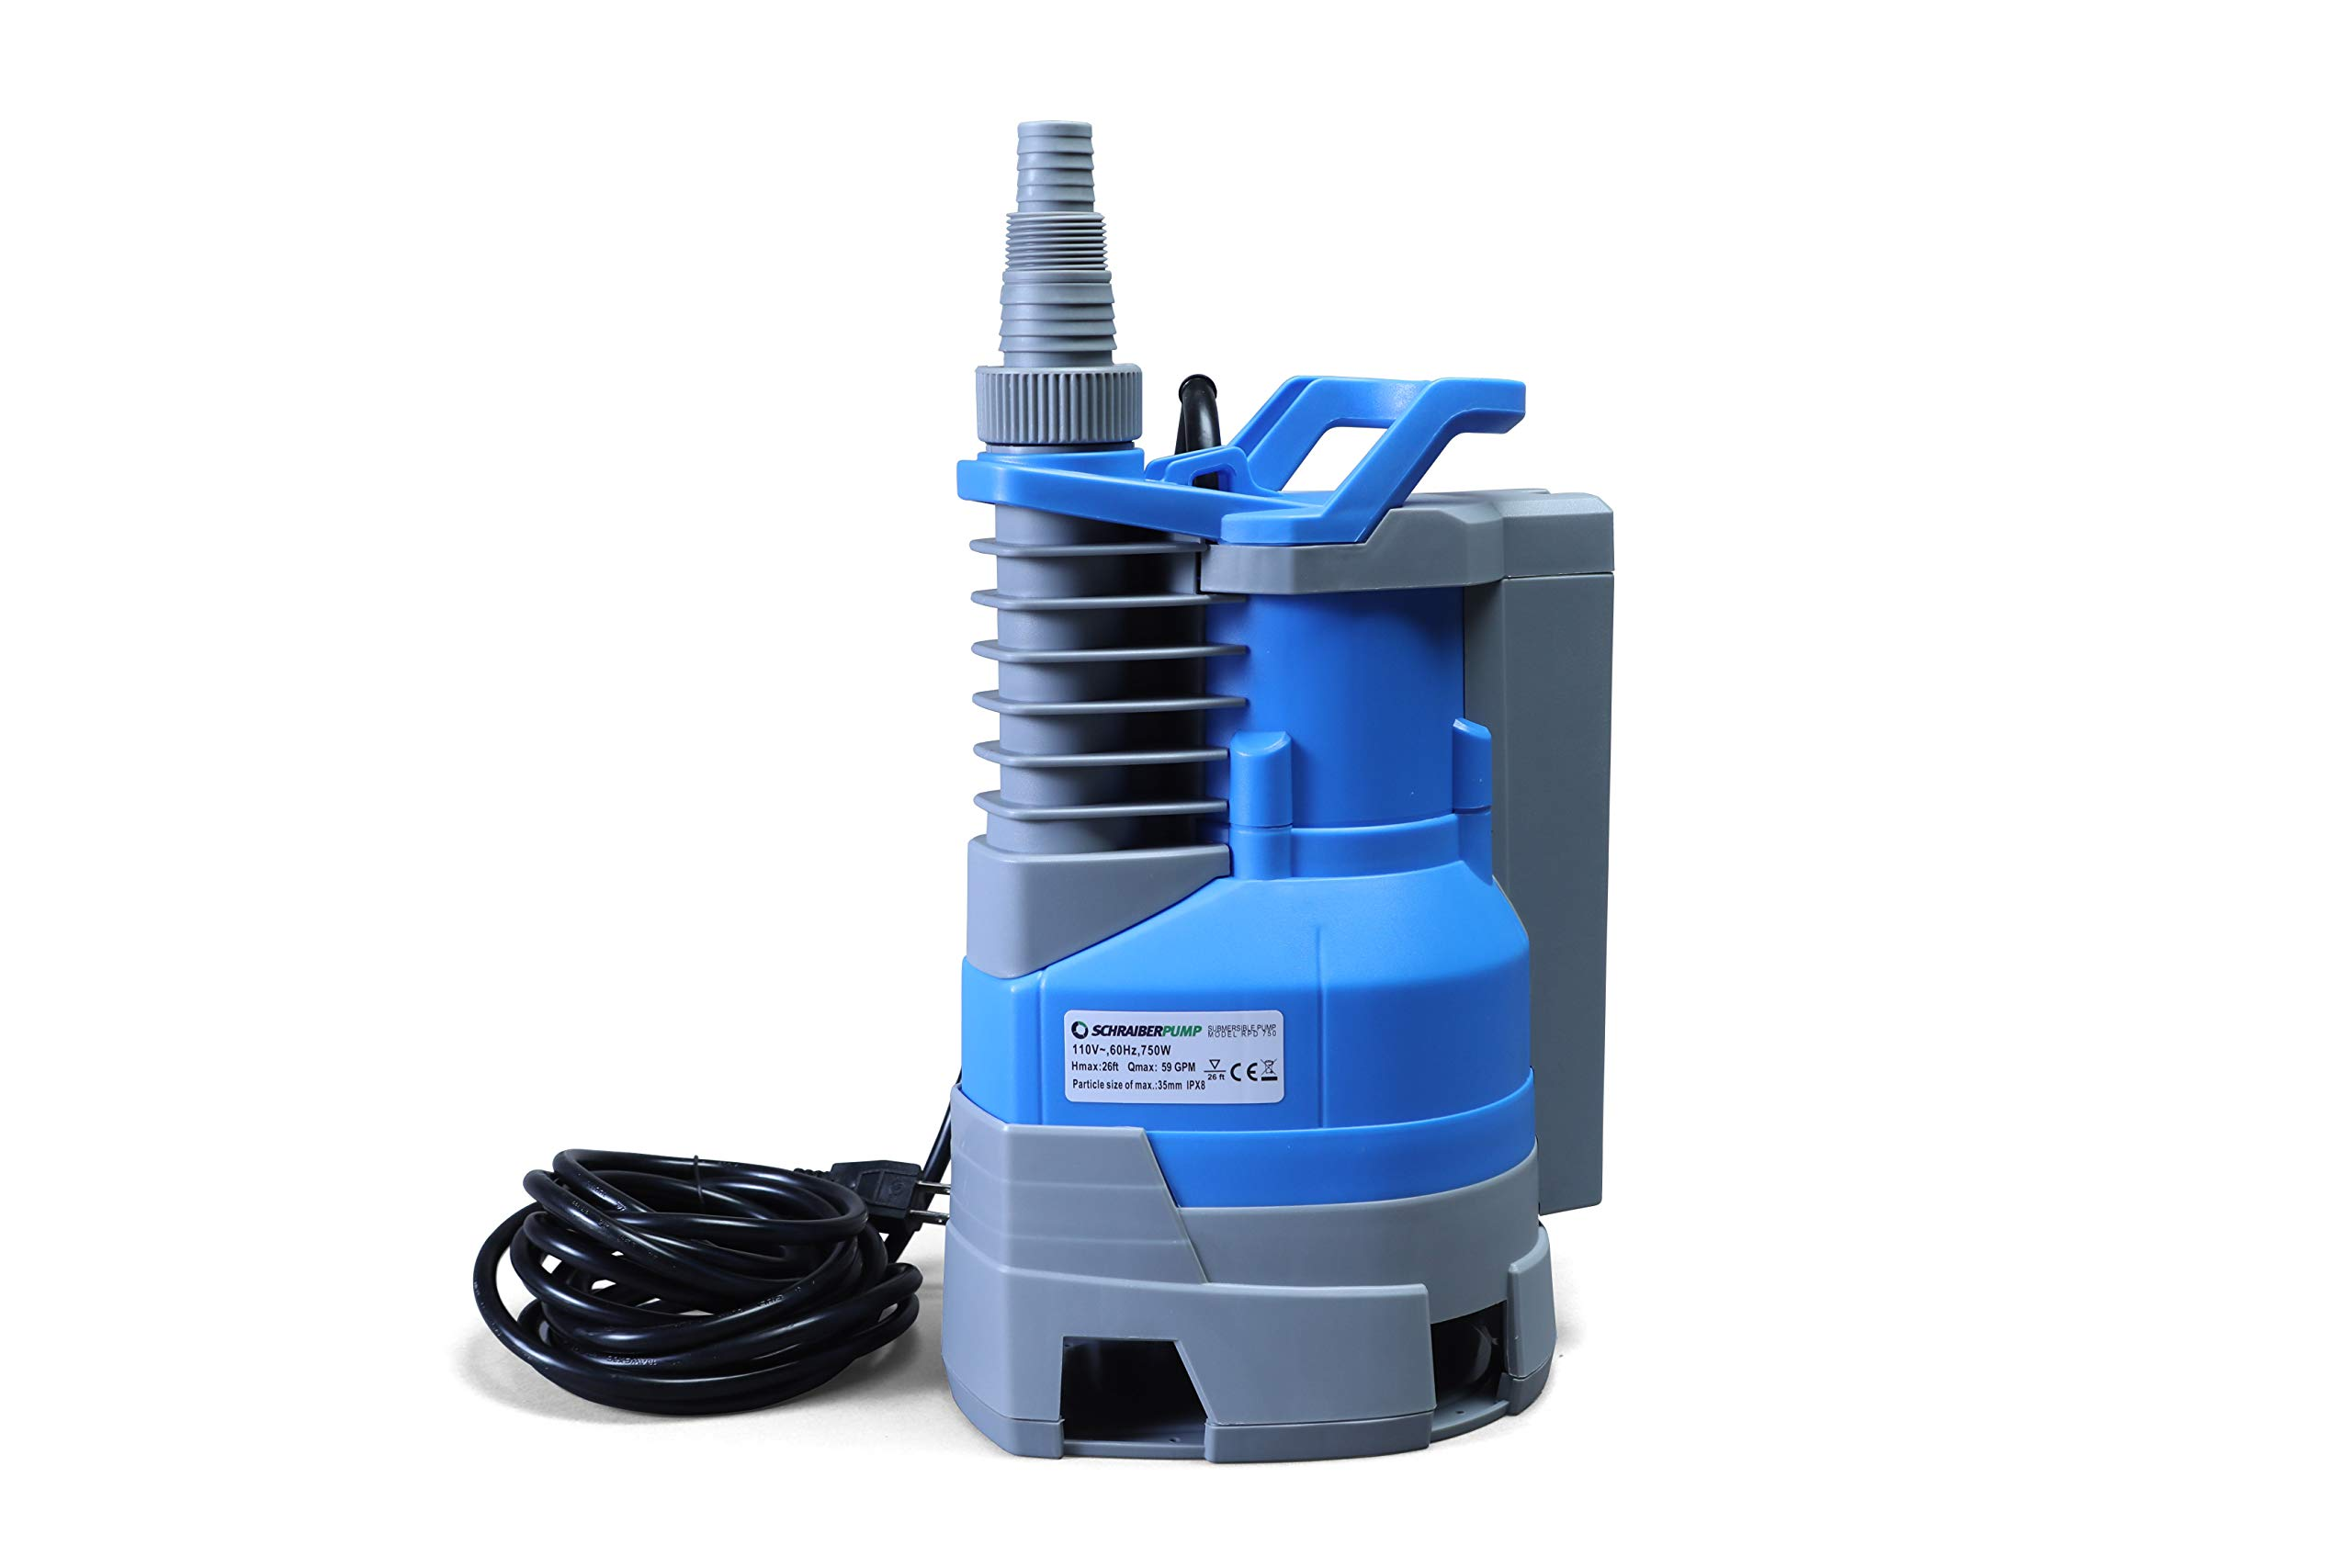 Submersible Clean/Dirty Water Sump Pump 1/2hp with built in automatic ON/OFF (with adjustable start heights) 2400GPH, 16'Head, Thermal Protector, Copper Winding - Schraiberpump by Schraiberpump